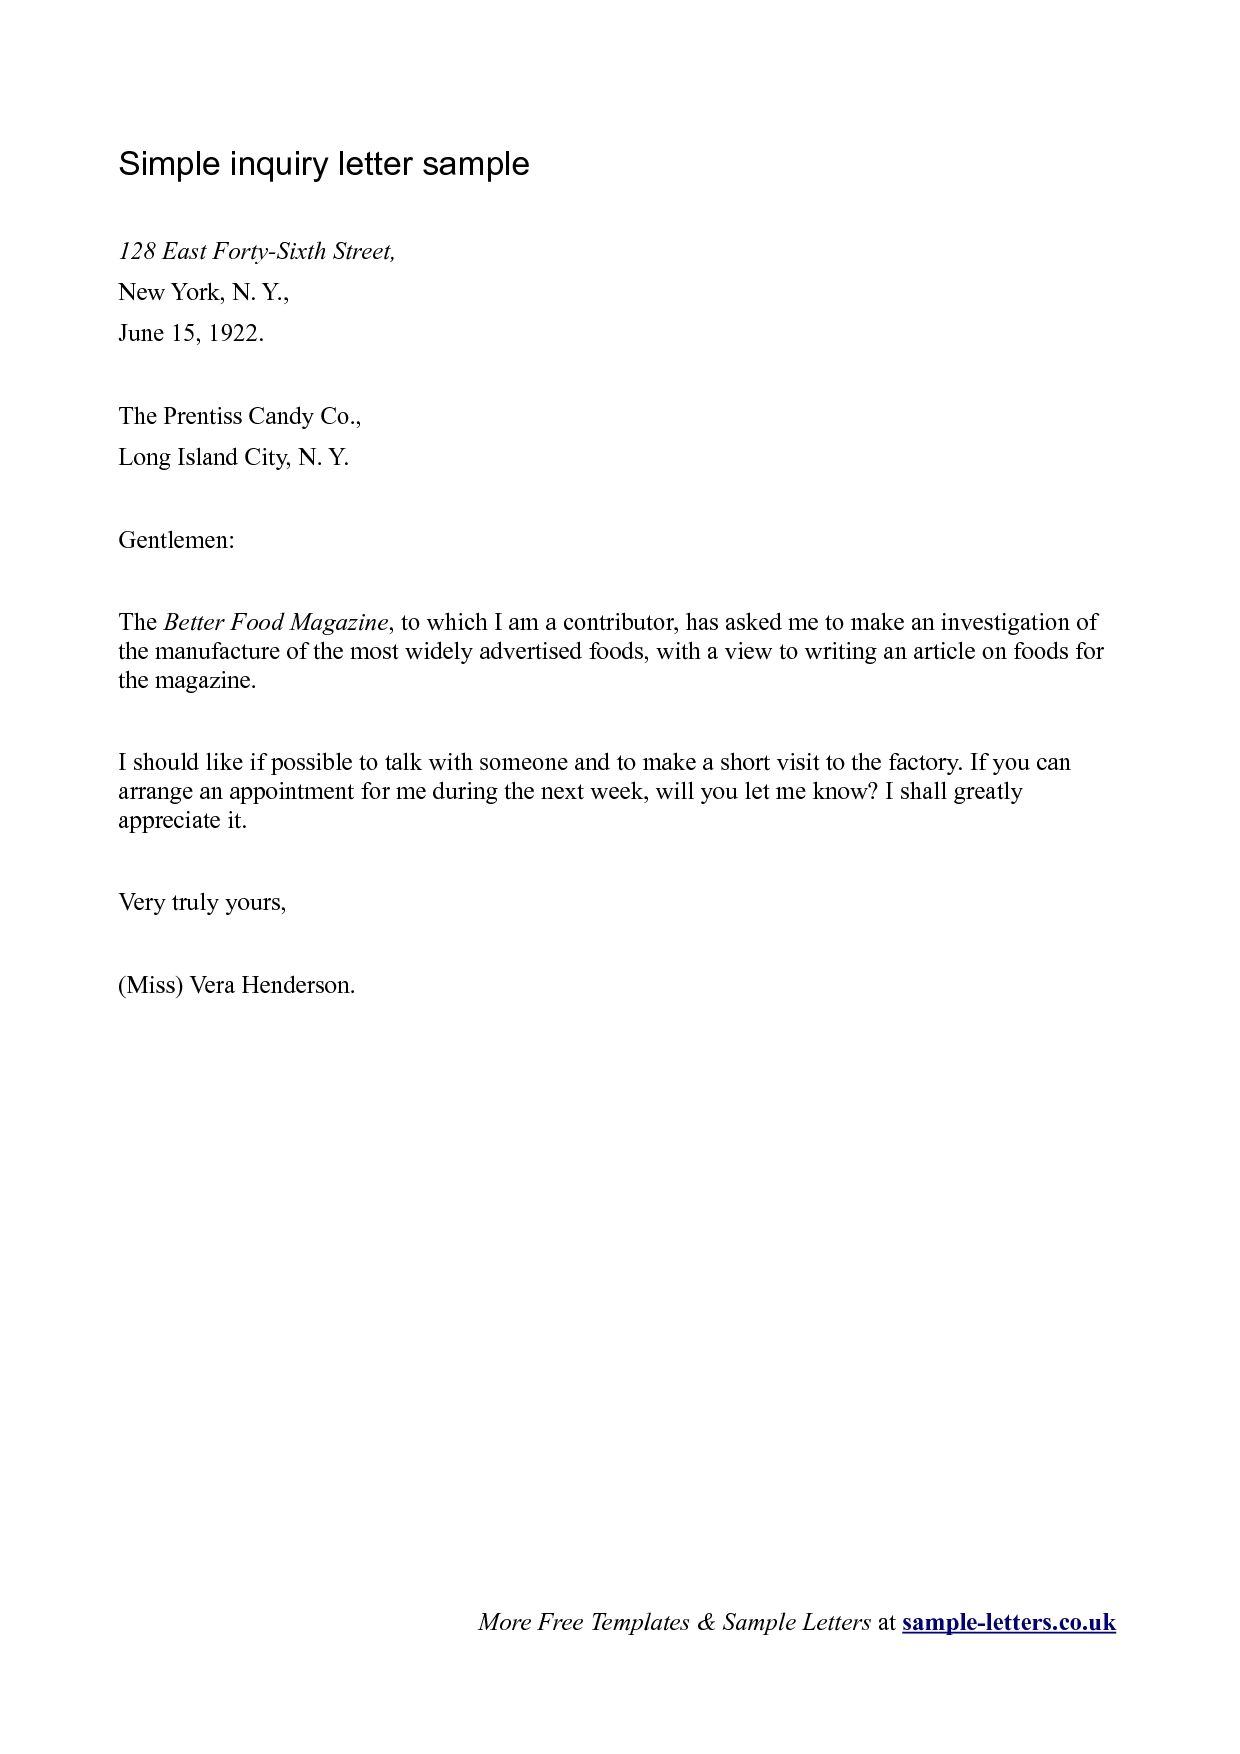 Awesome Business Letter Of Inquiry Sample The Letter Sample  Purchase Inquiry Letter